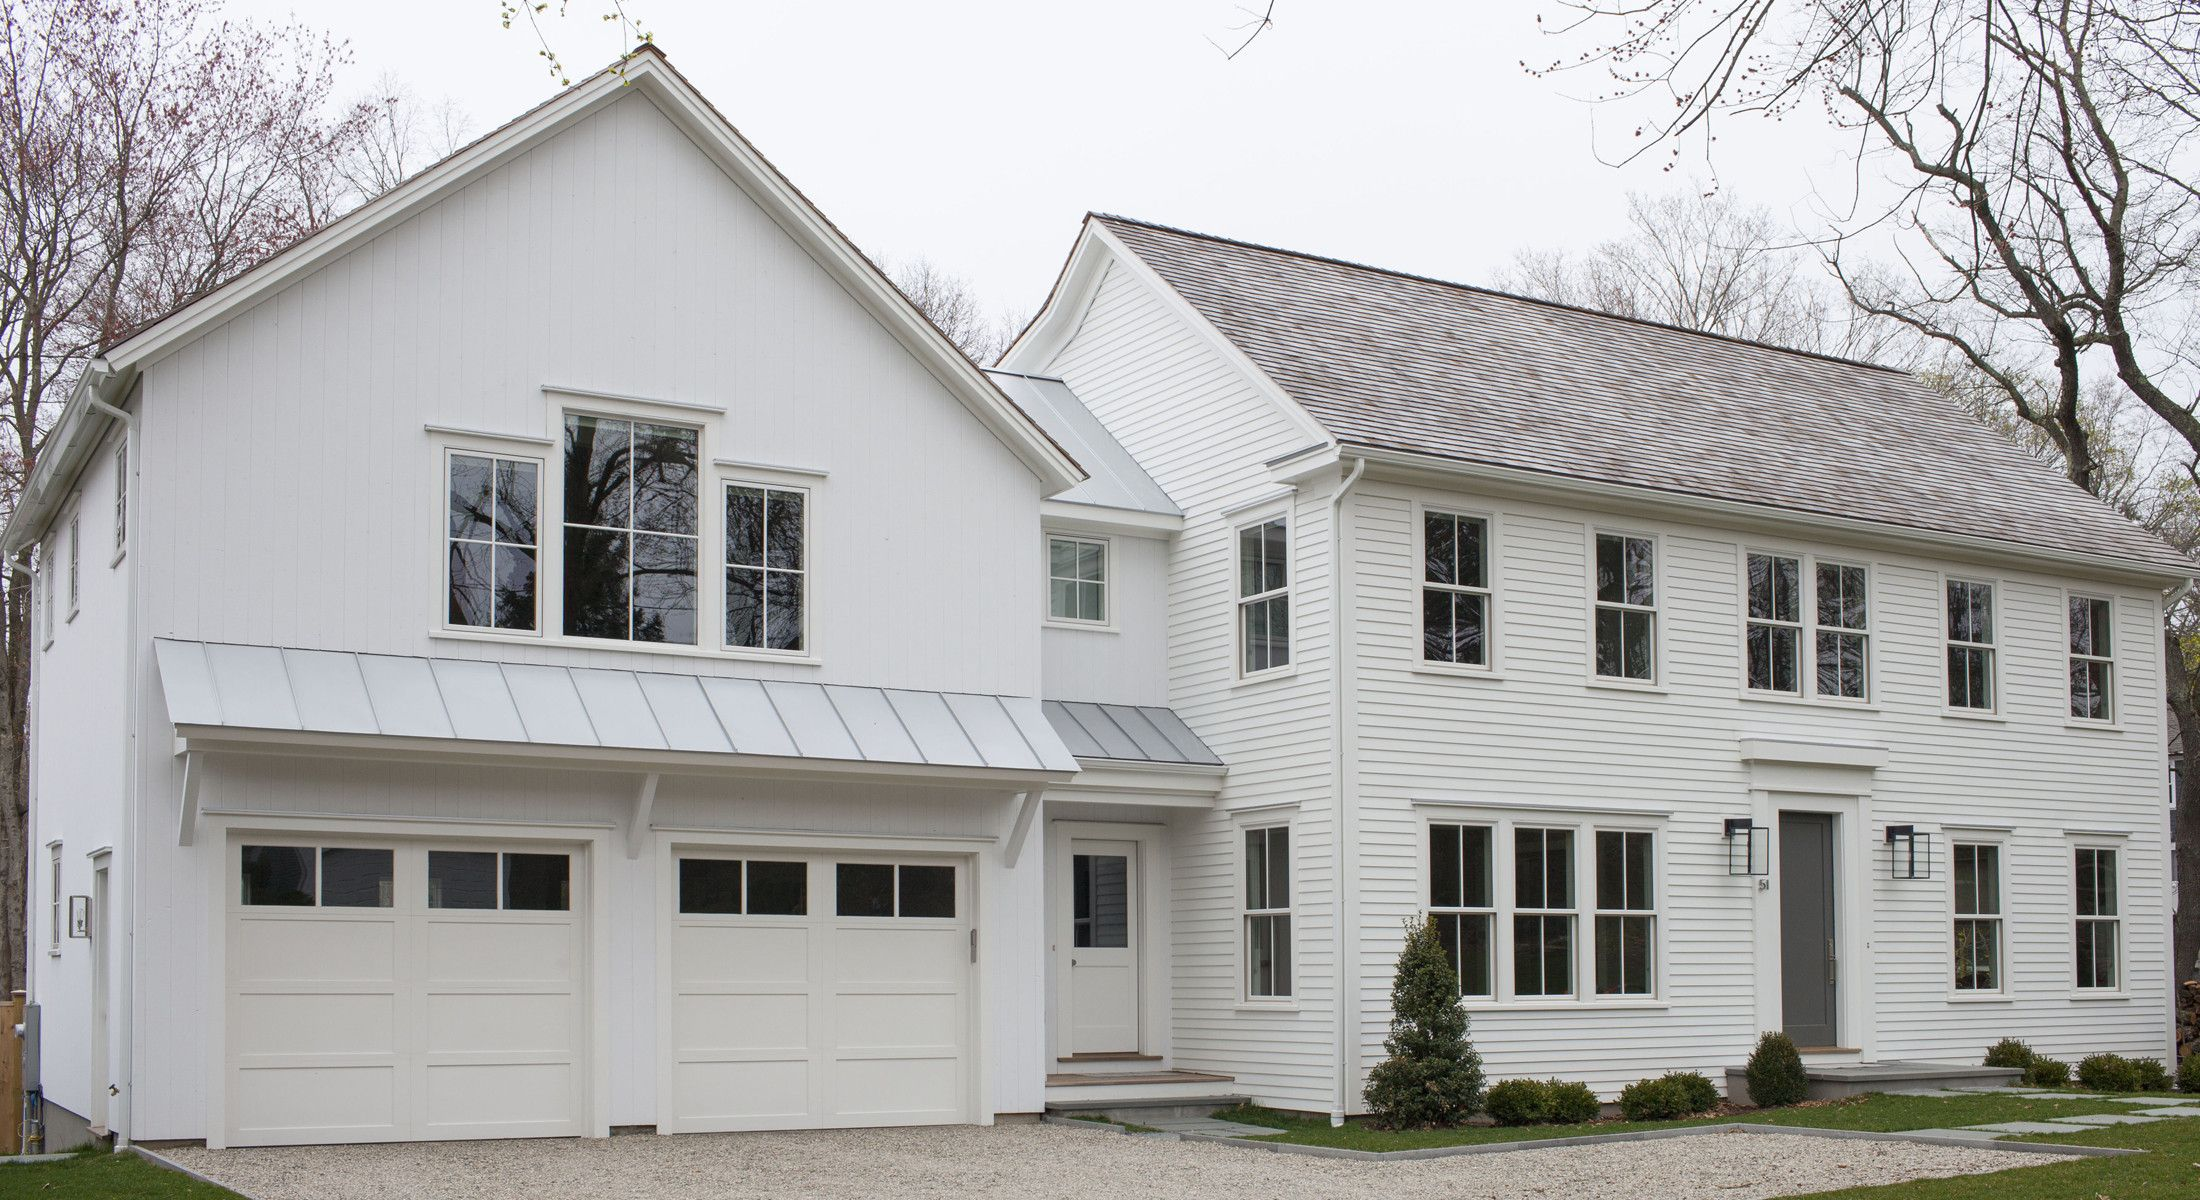 Farmhouse Exterior Colors With Metal Roof Modern Farmhouse Exterior With Columnless Roof Awning